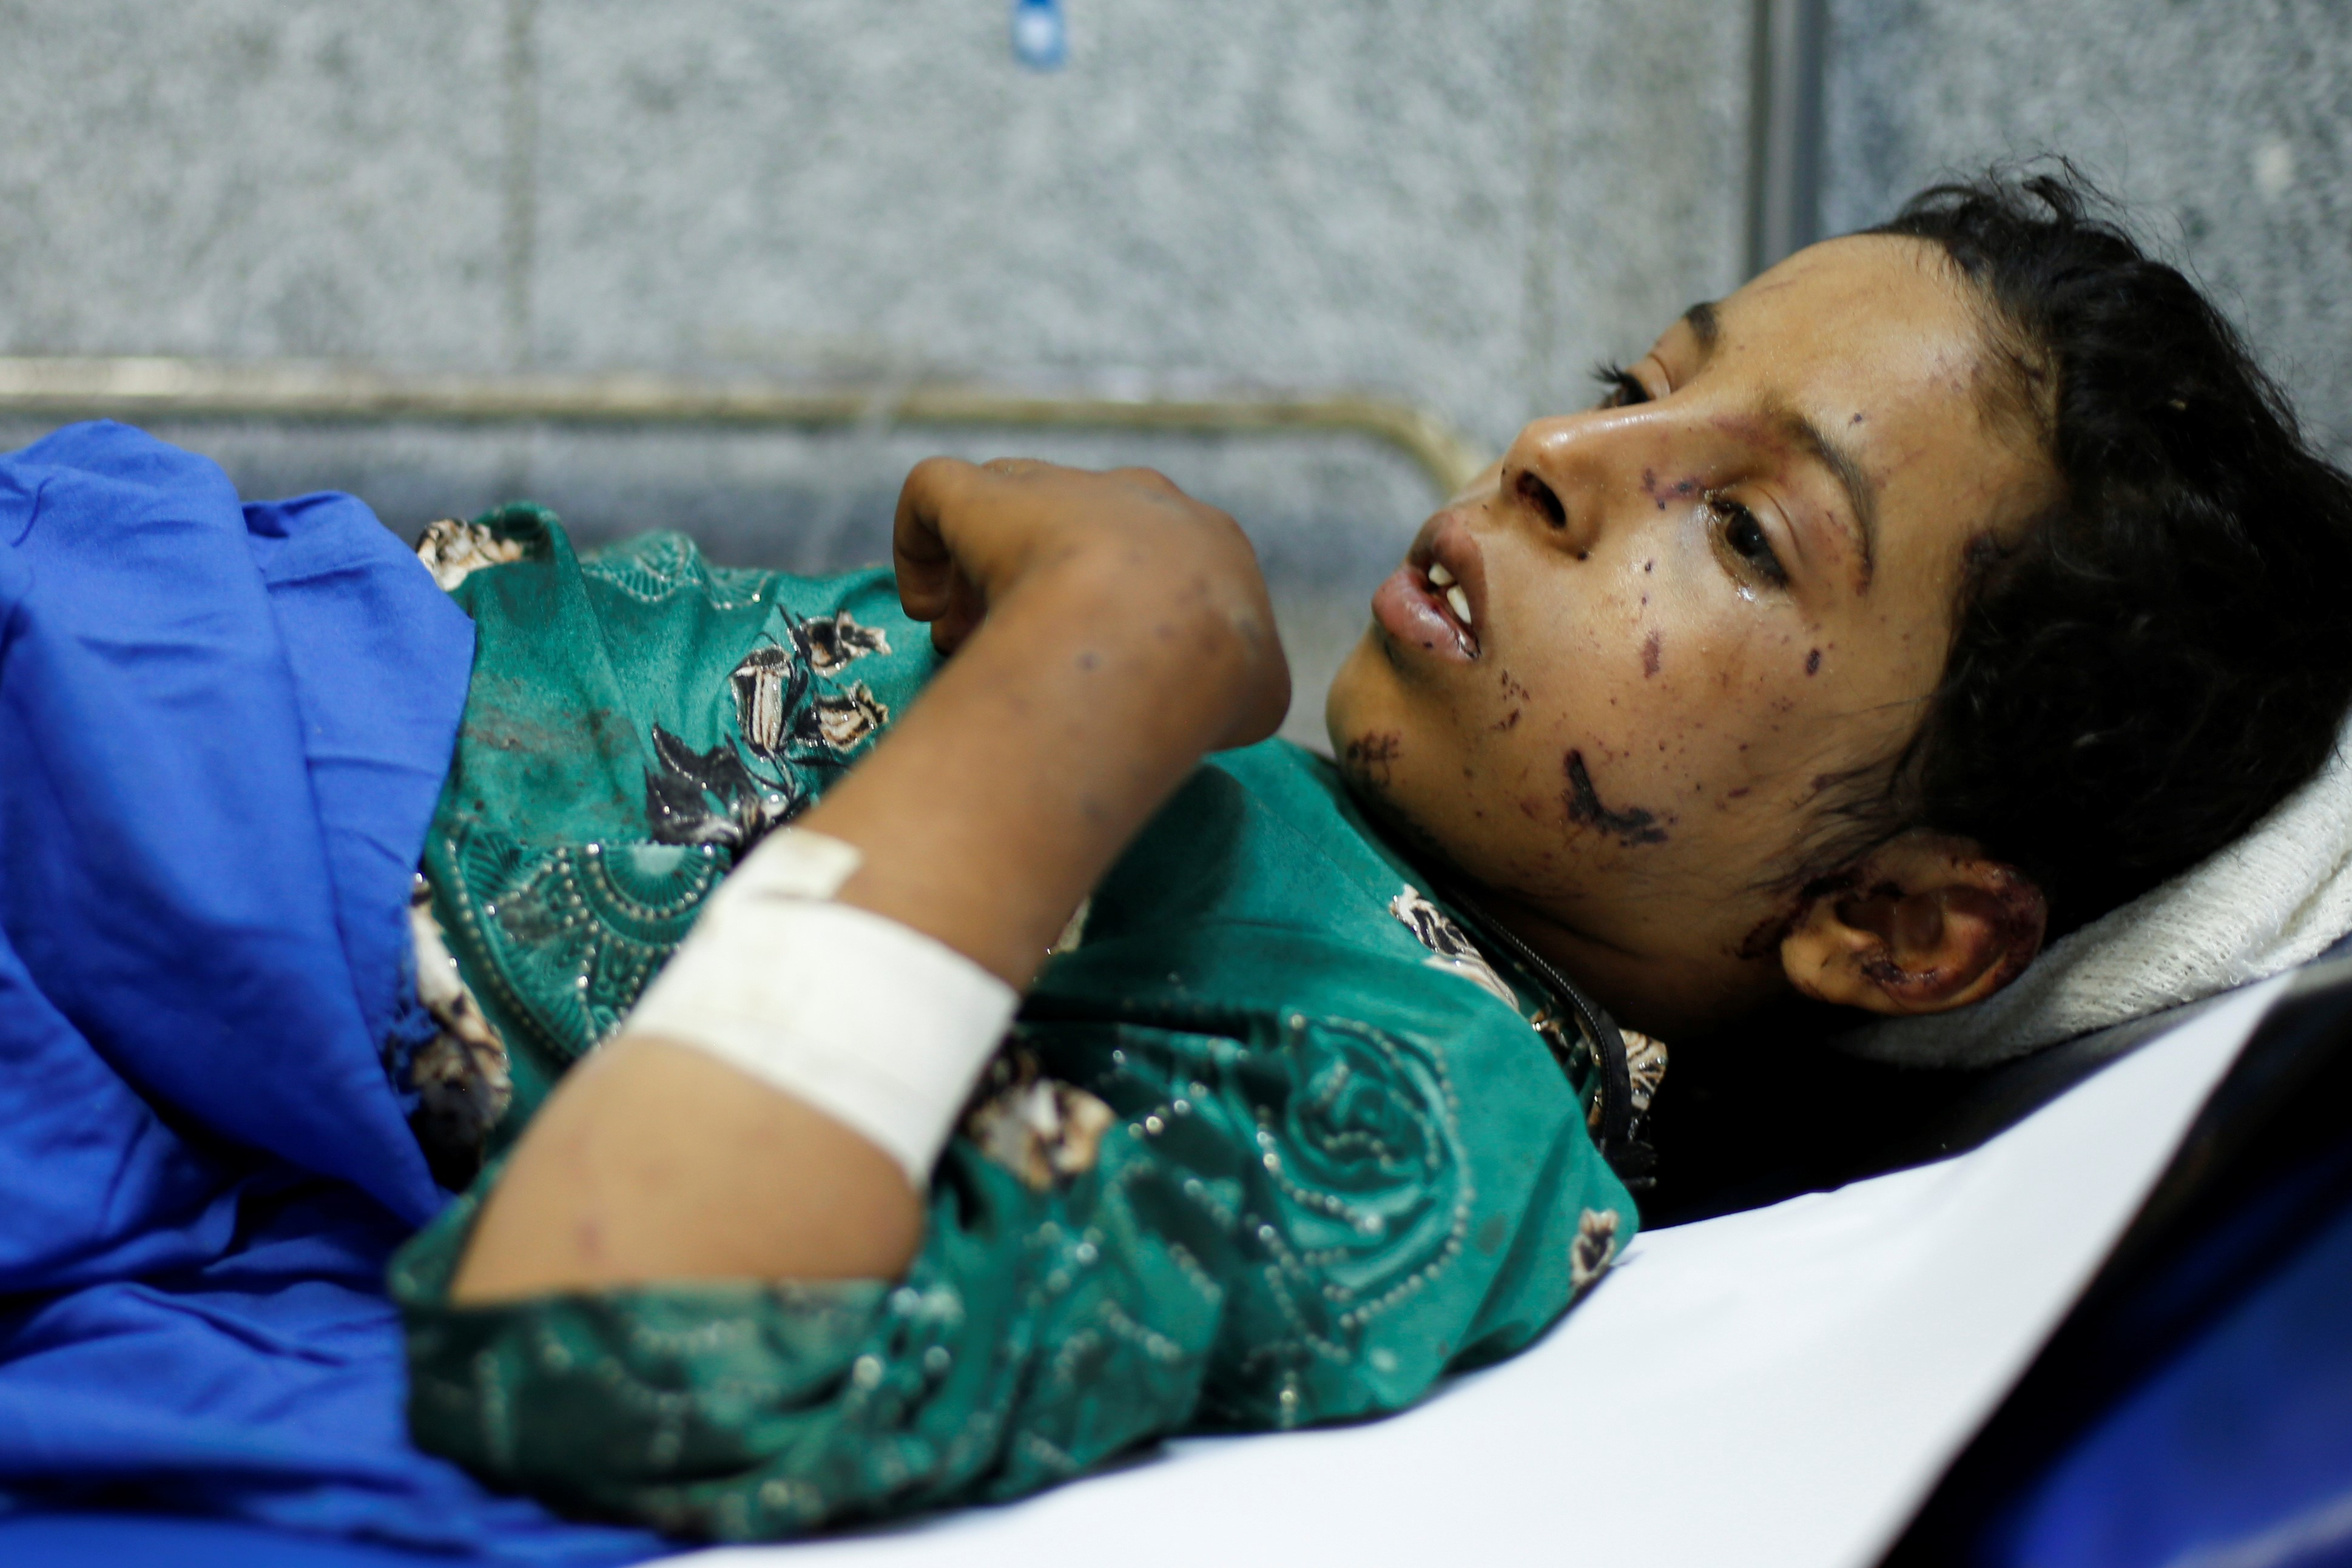 Qaboul Mabkhout Marzouq, 11, lies on a stretcher at a hospital in Sanaa after she was injured in an air strike in the northern province of al-Jawf, Yemen on 15 July, 2020 (Reuters)